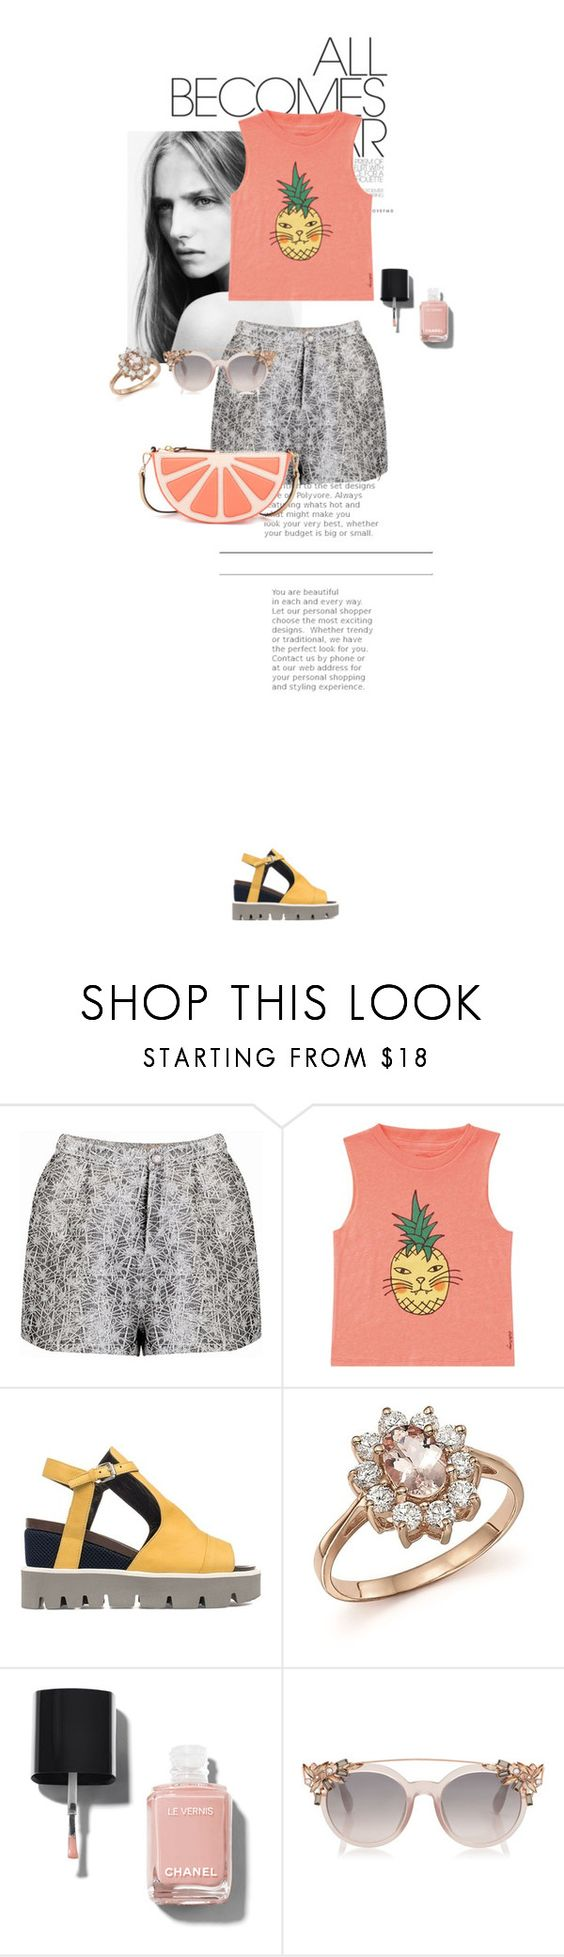 """Unbenannt #2637"" by akchen ❤ liked on Polyvore featuring Billabong, Strategia, Bloomingdale's, Chanel and Kate Spade"